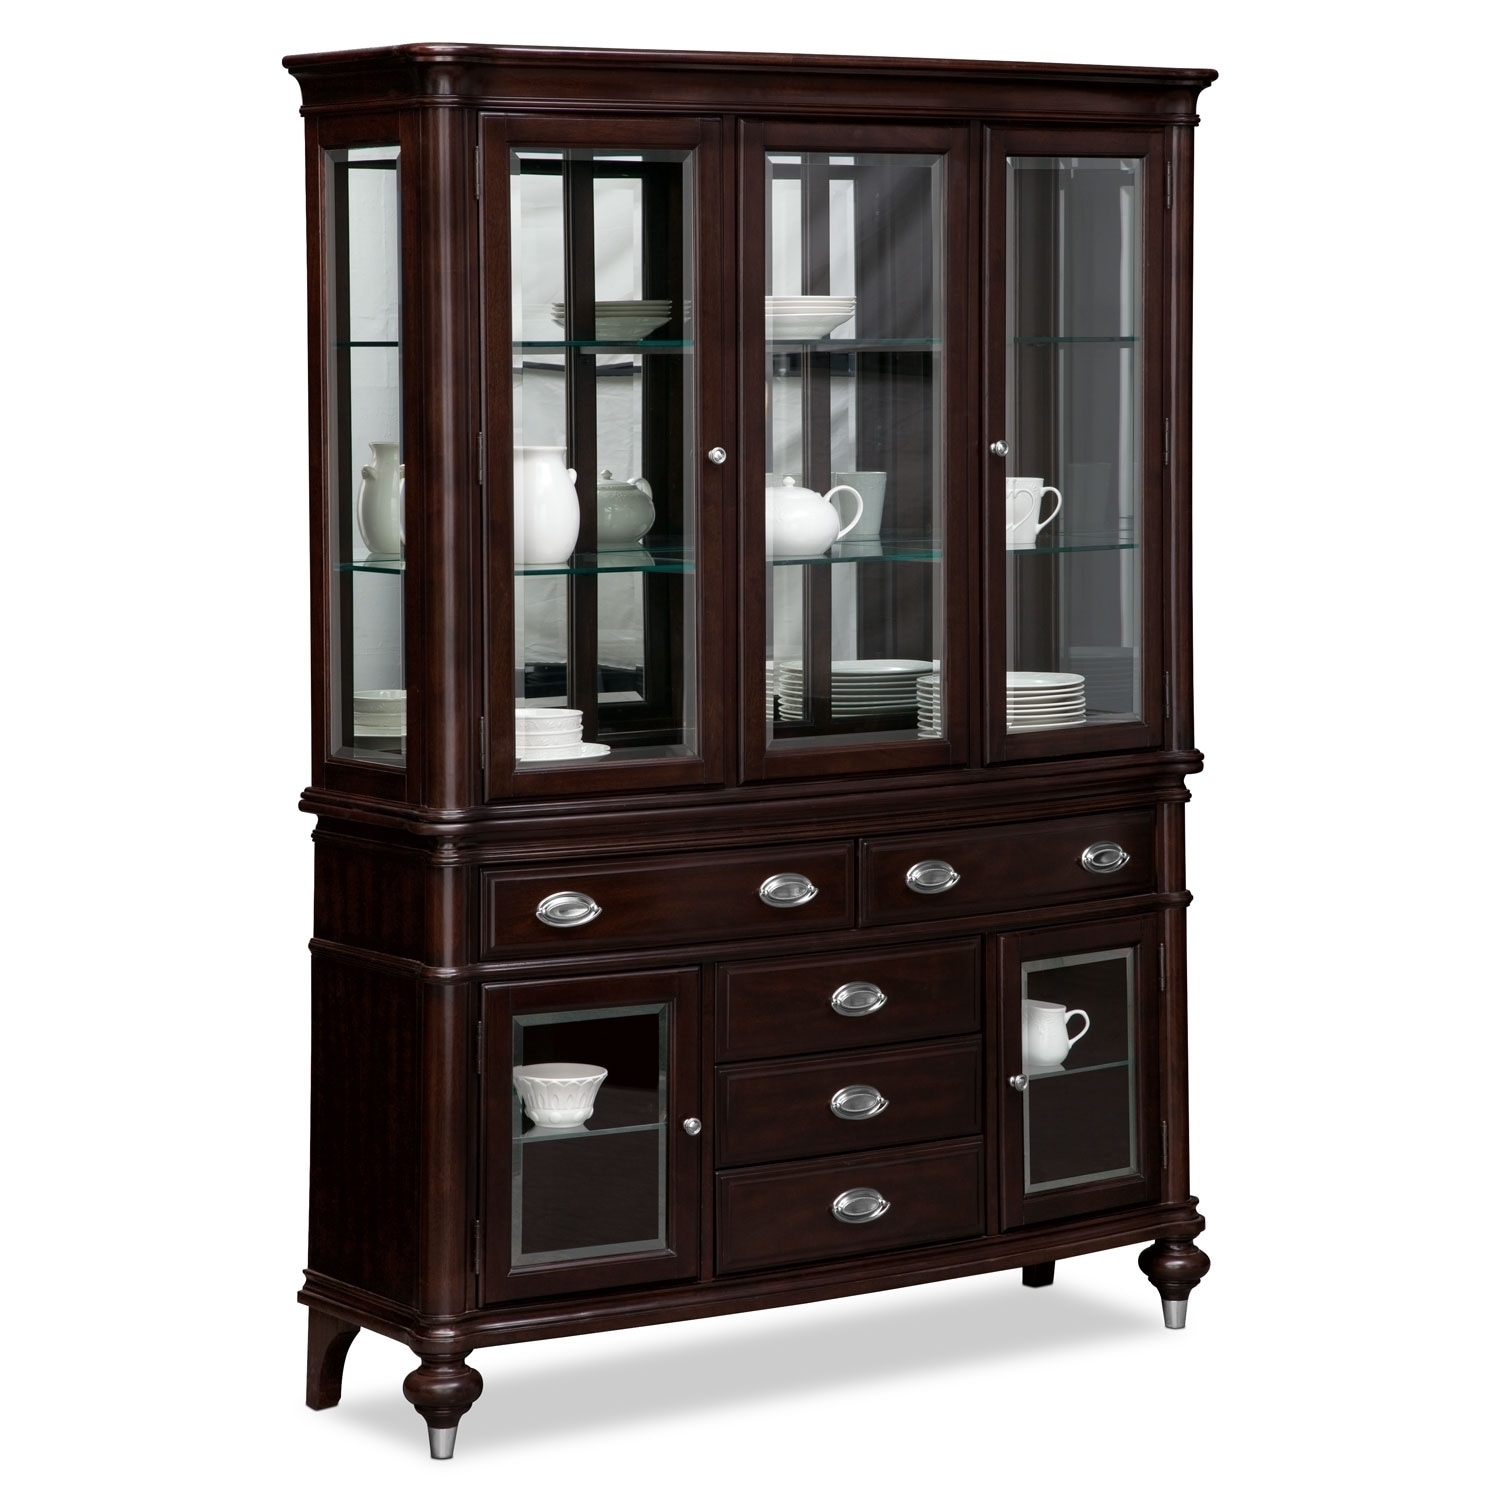 Buffet & Sideboard Cabinets | Value City with regard to Brown Wood 72 Inch Sideboards (Image 7 of 30)